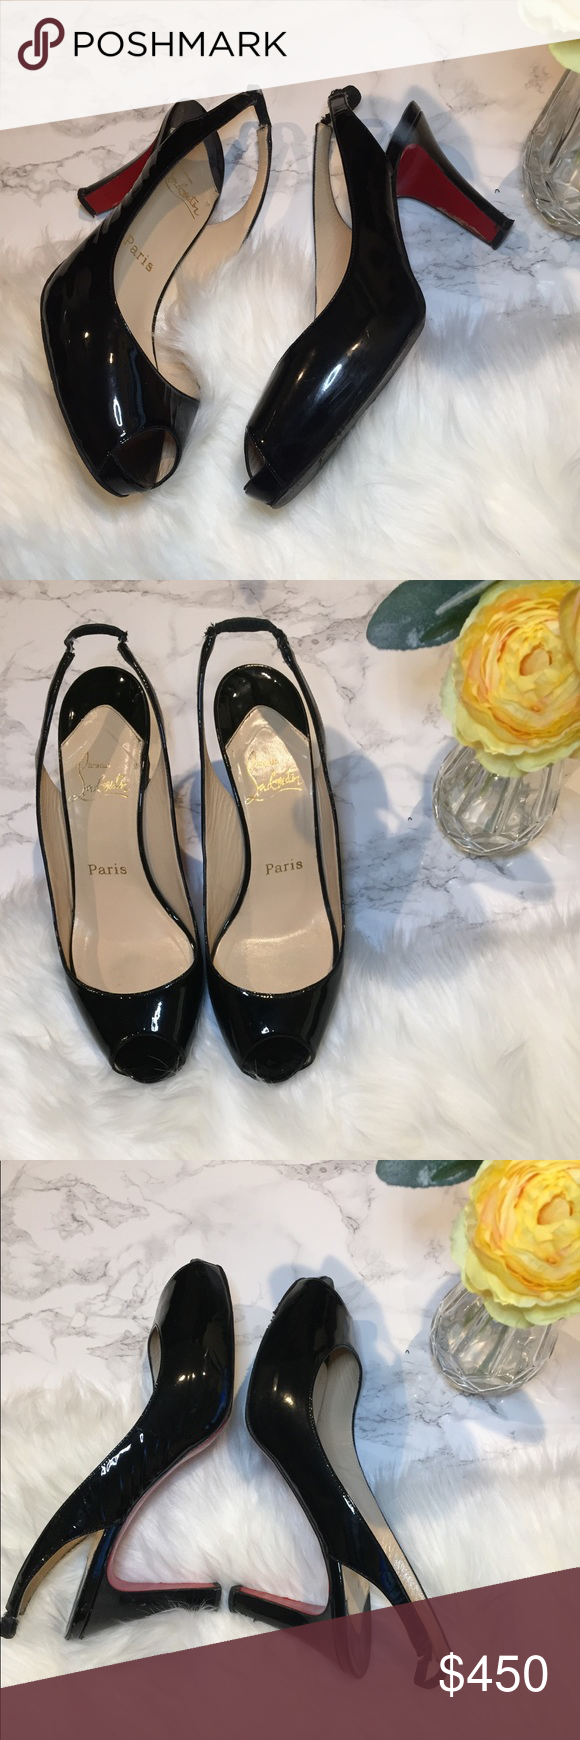 1bf4f71fb99c Christian Louboutin Prive Sling back pumps Black patent leather Christian  Louboutin Prive peep-toe pumps with concealed platforms